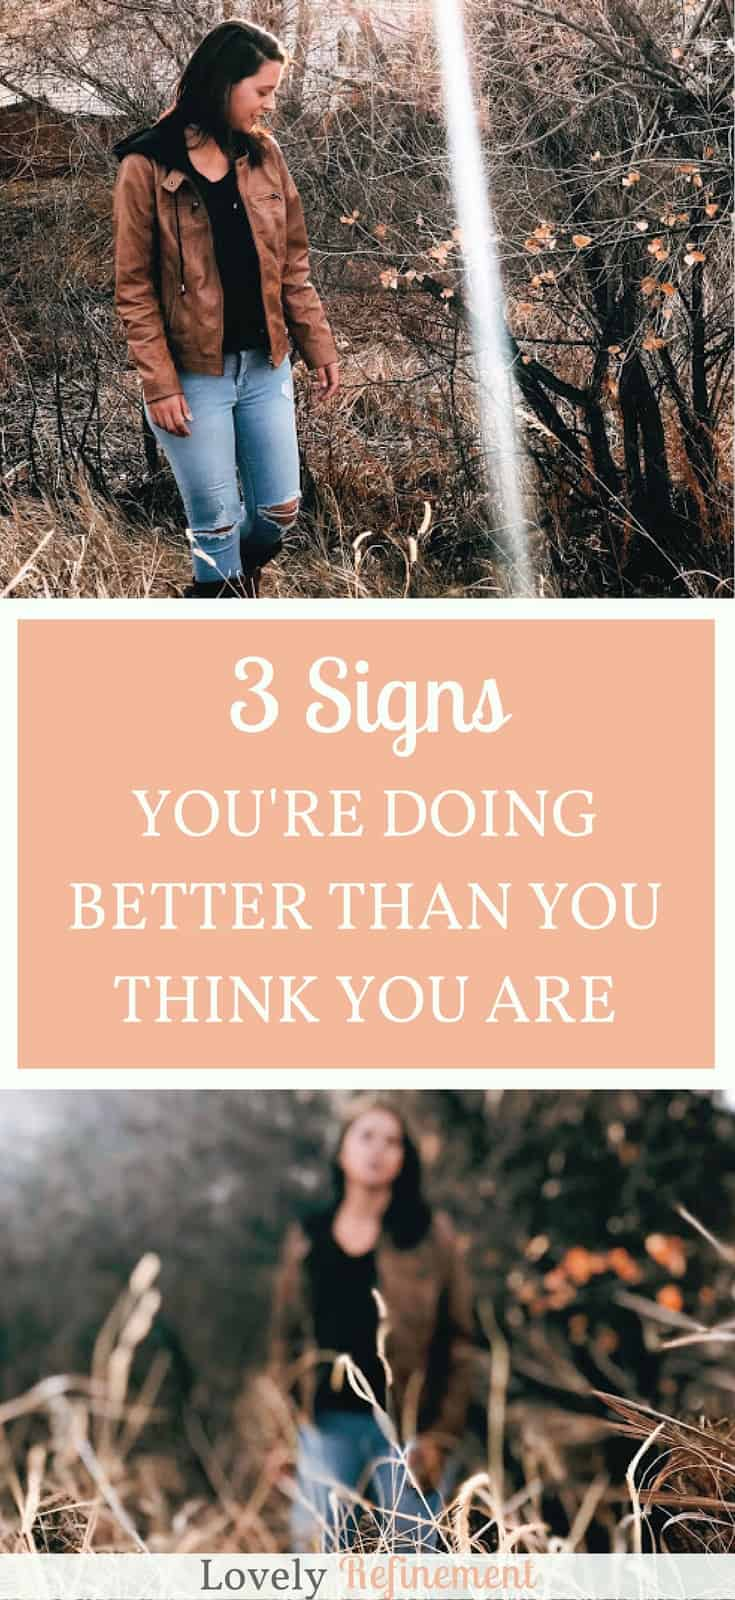 Sometimes it feels like we are never enough, and always behind. If you are constantly trying to be the best version of yourself, but feel like you're falling behind, here are some signs you're doing better than you think.